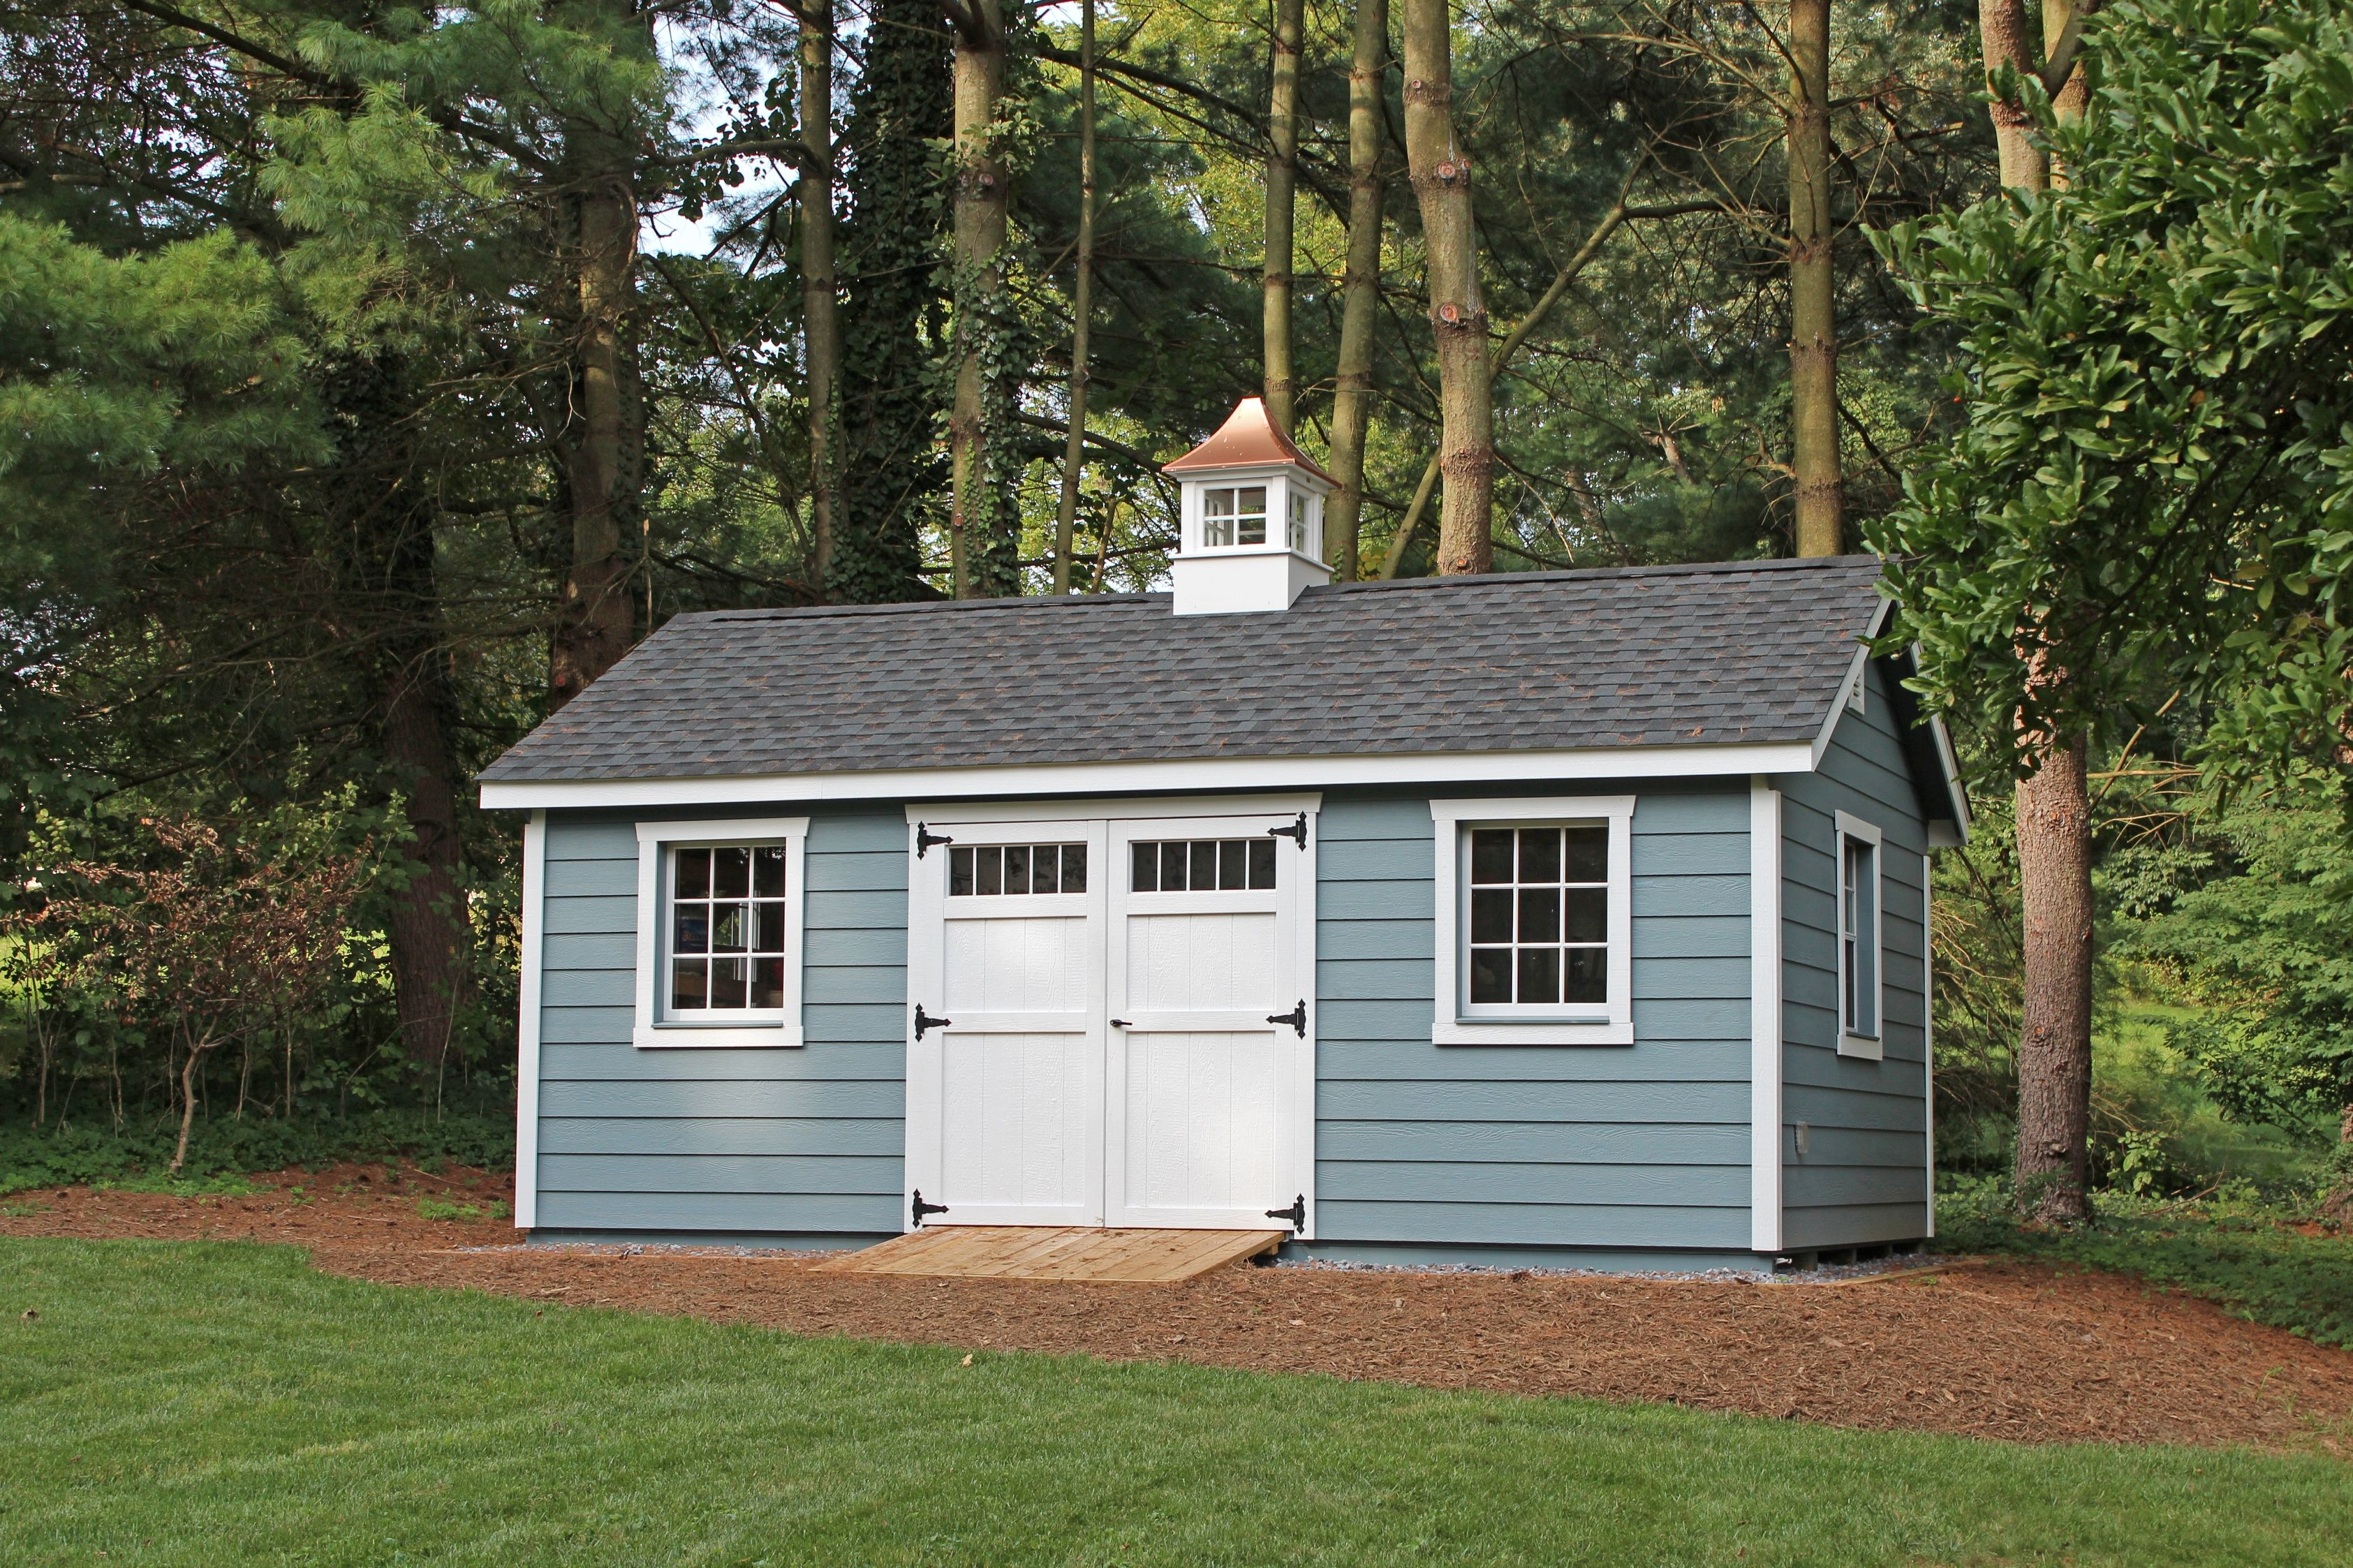 12 X20 Lap Siding Garden Shed Visit Our Website At Www Lappstructures Com For More Information Or To Place Your Order T Backyard Structures Shed Run In Shed